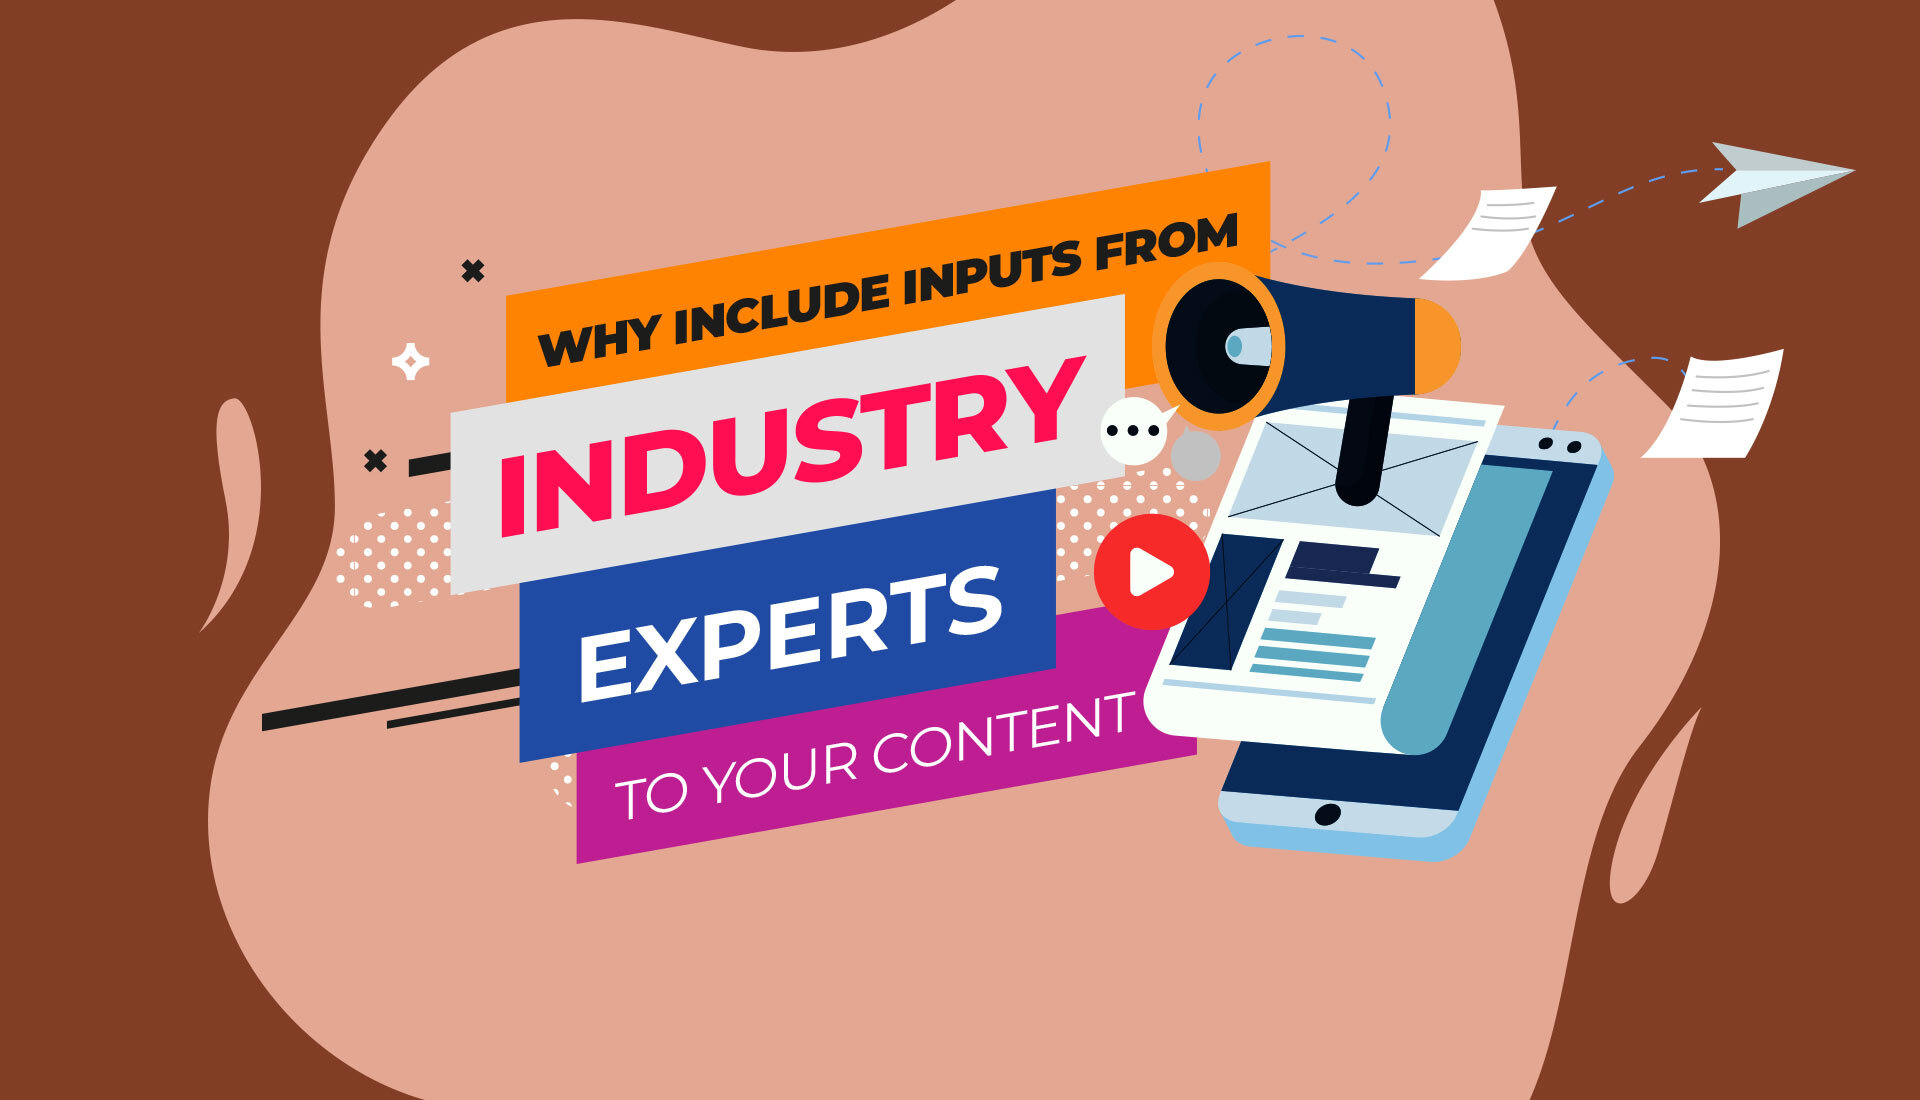 Industry Experts To Your Content